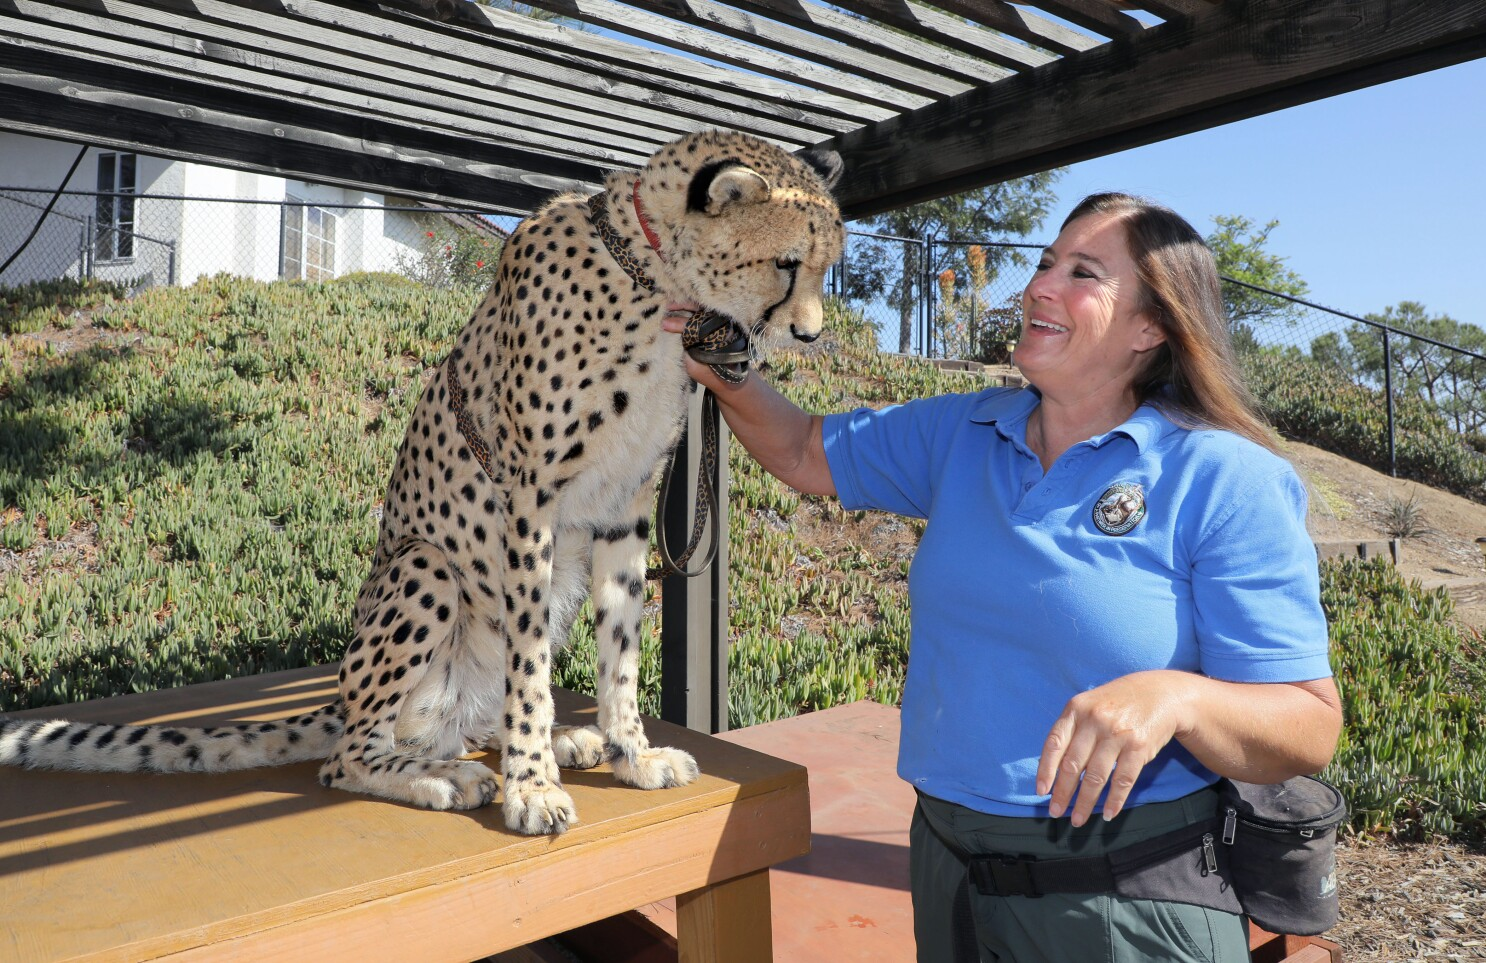 Local wildlife center aims to save cheetah cubs destined for illegal pet trade